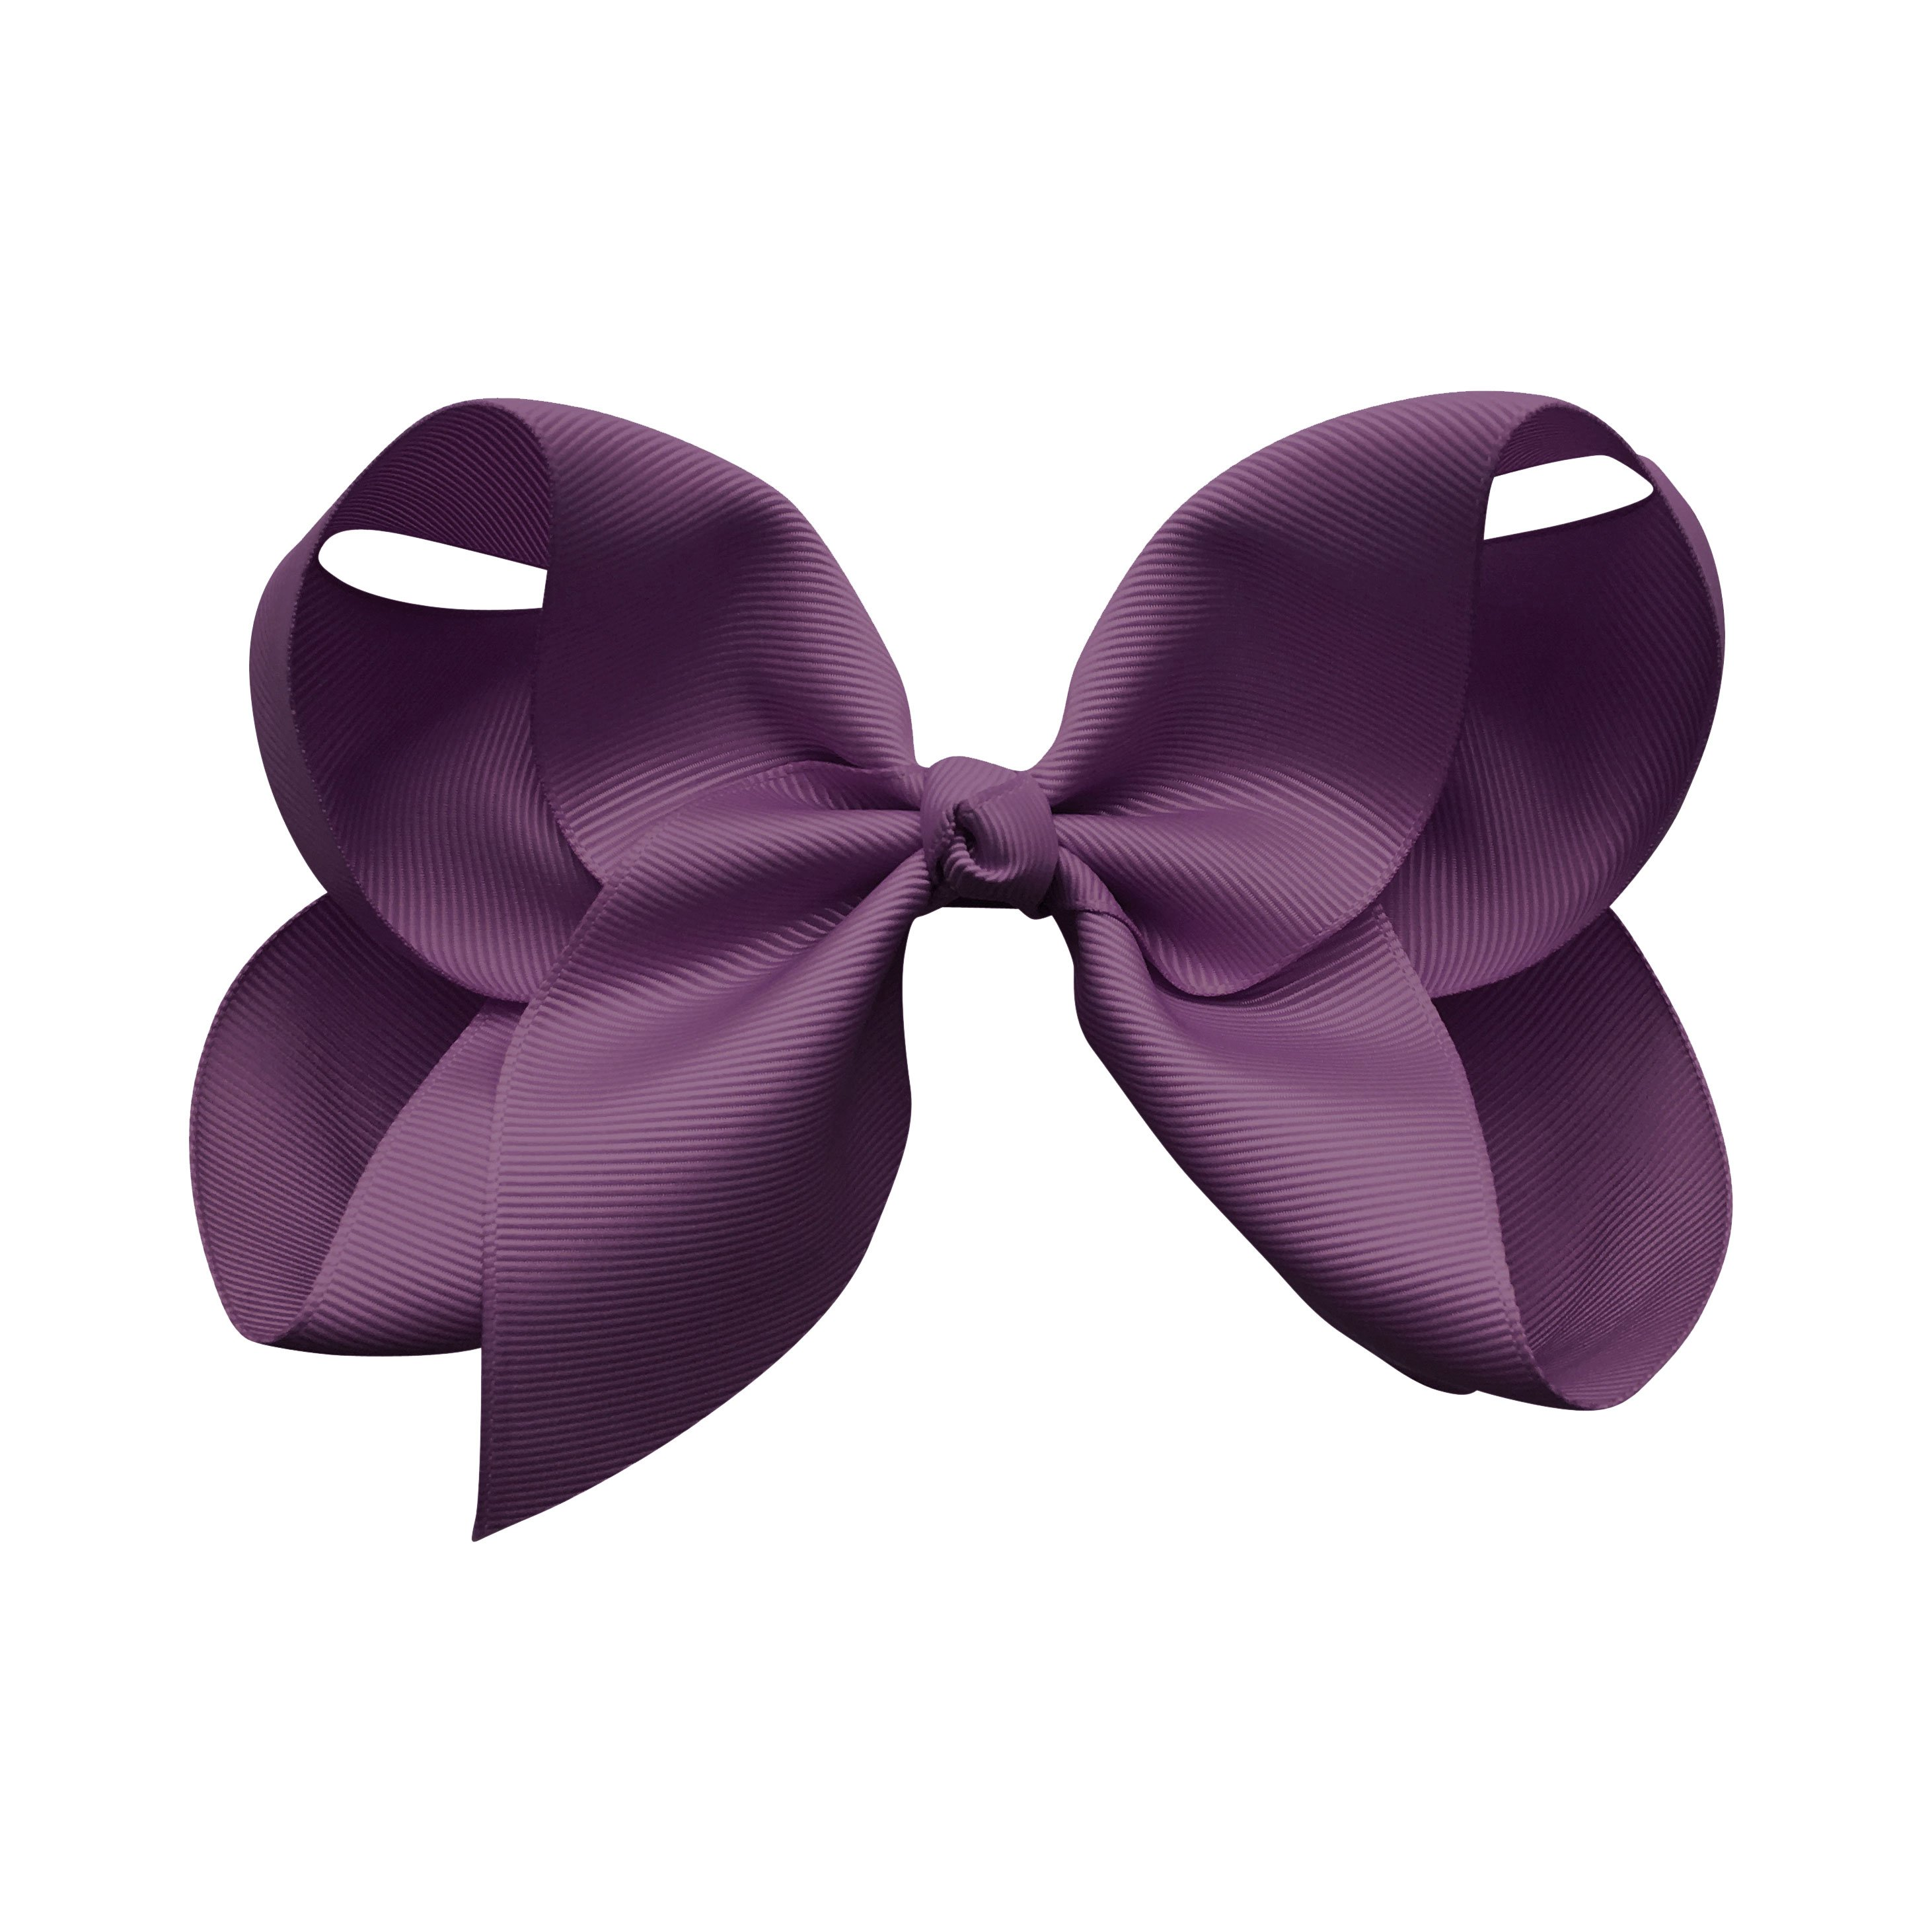 Image of Jumbo Boutique Bow - alligator clip - amethyst